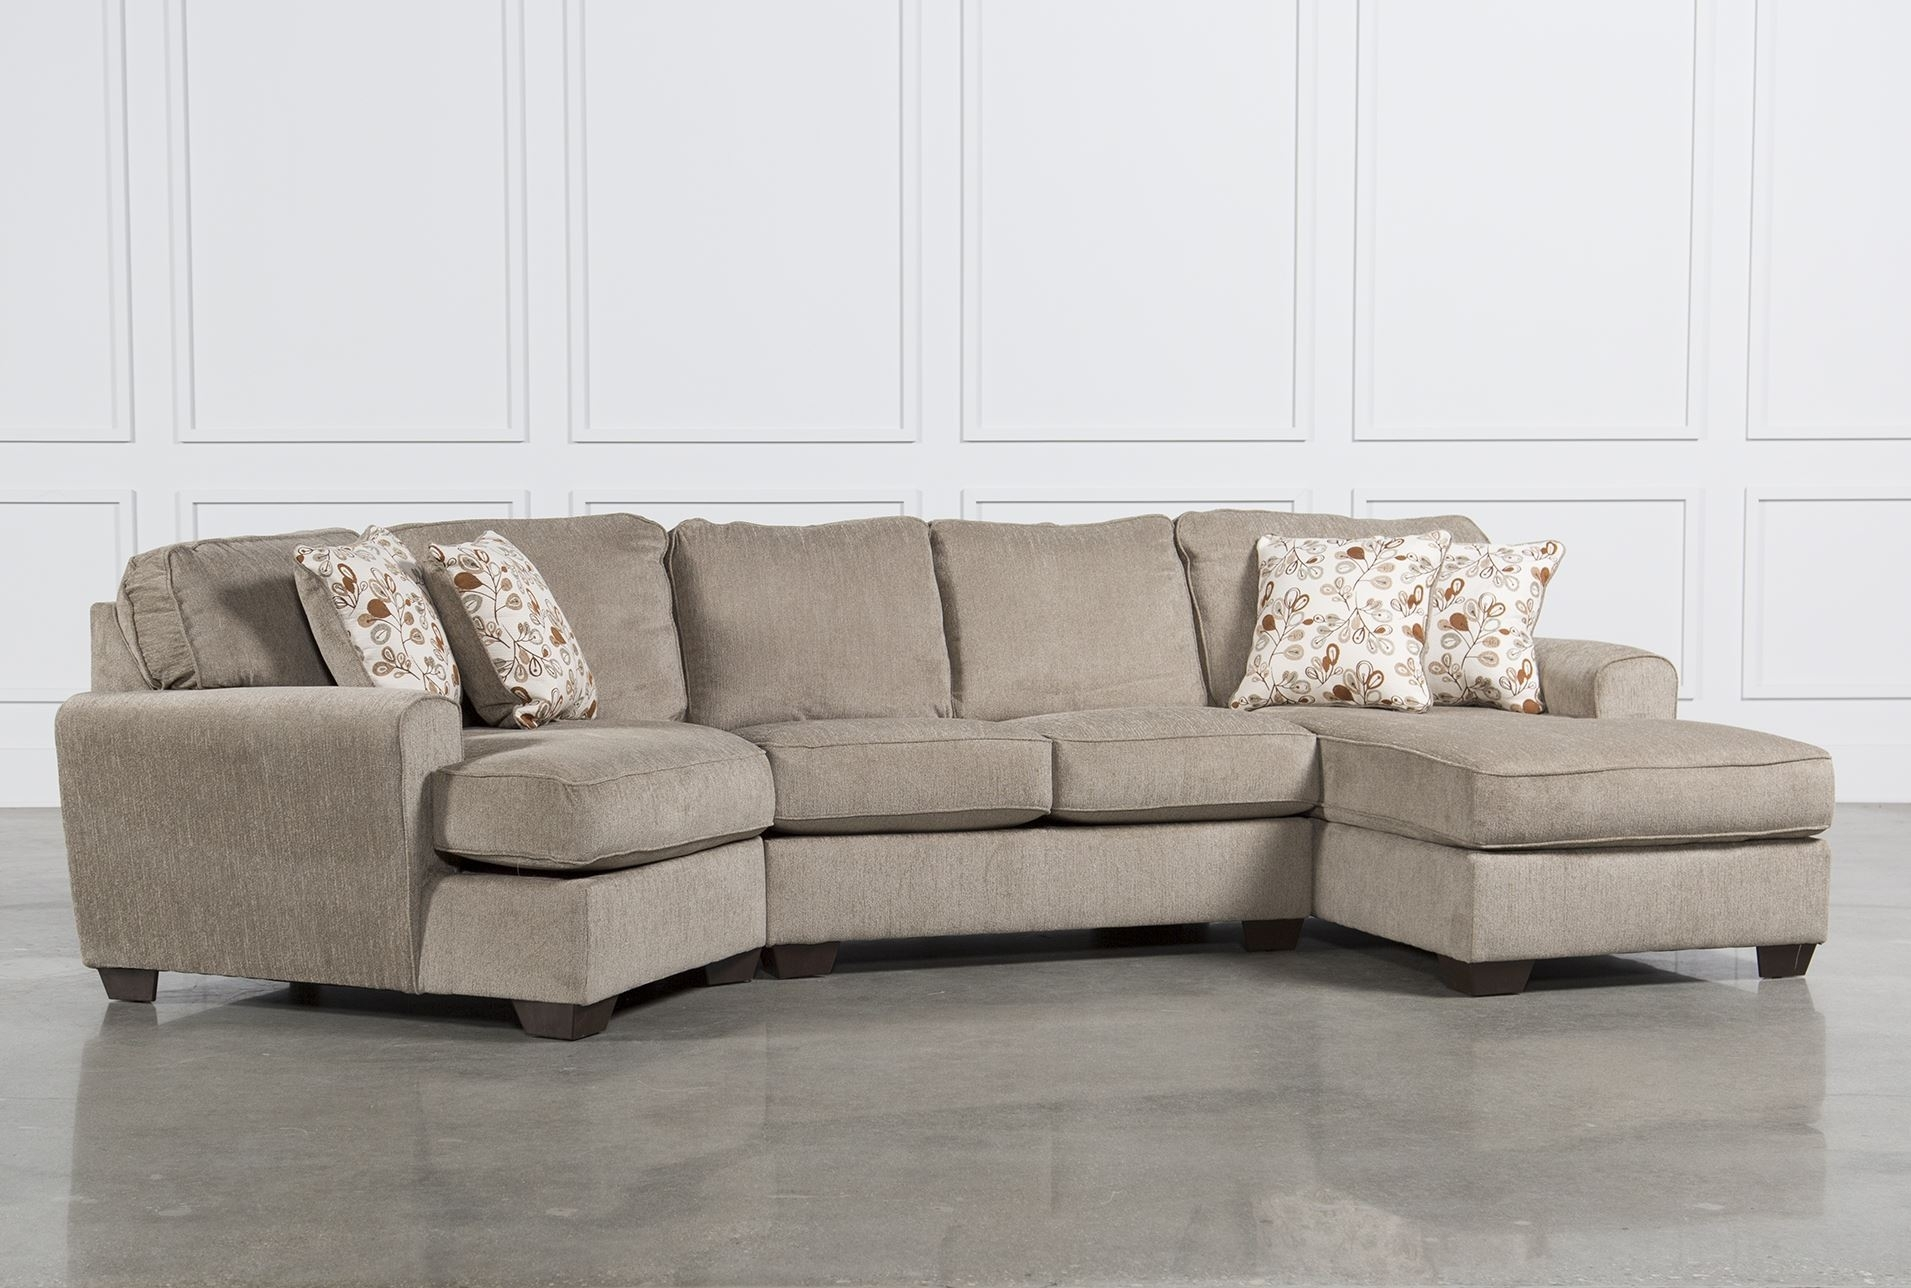 Furniture : Sectional Sofa Gta Sectional Couch El Paso Sectional With Gta Sectional Sofas (View 1 of 10)